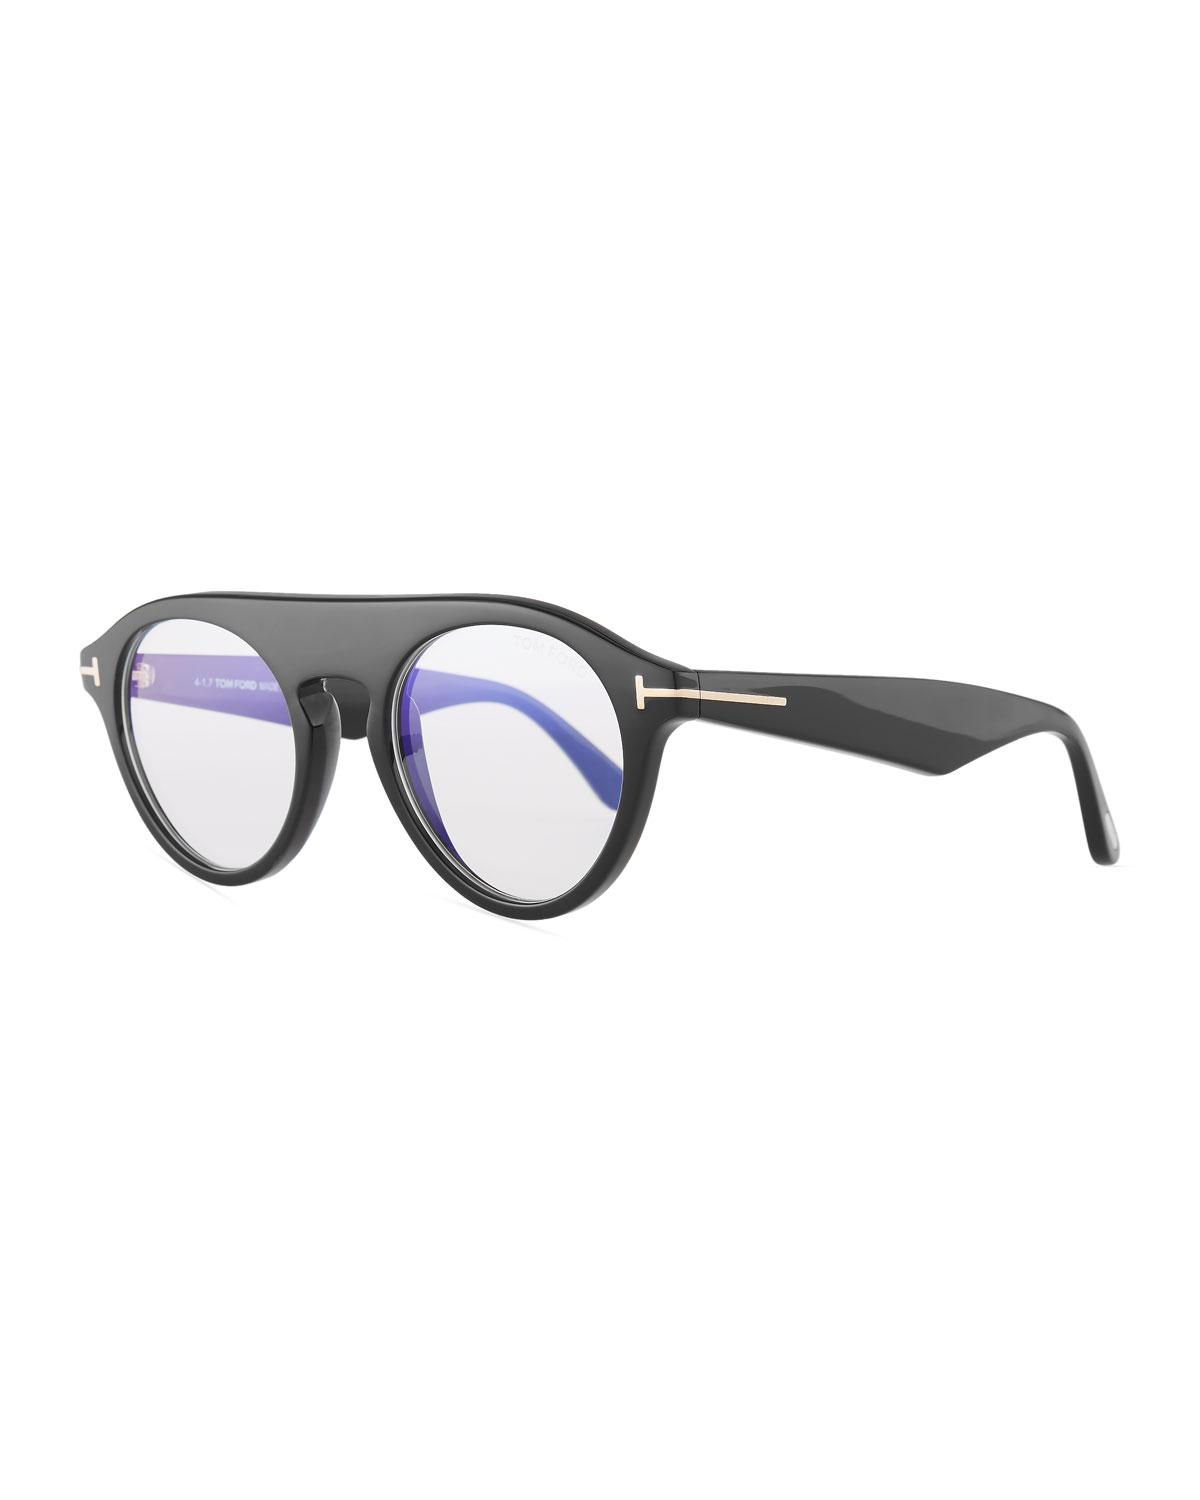 a49c93125b Tom Ford 0633 Blue Block Christopher Round Glasses in Black for Men ...